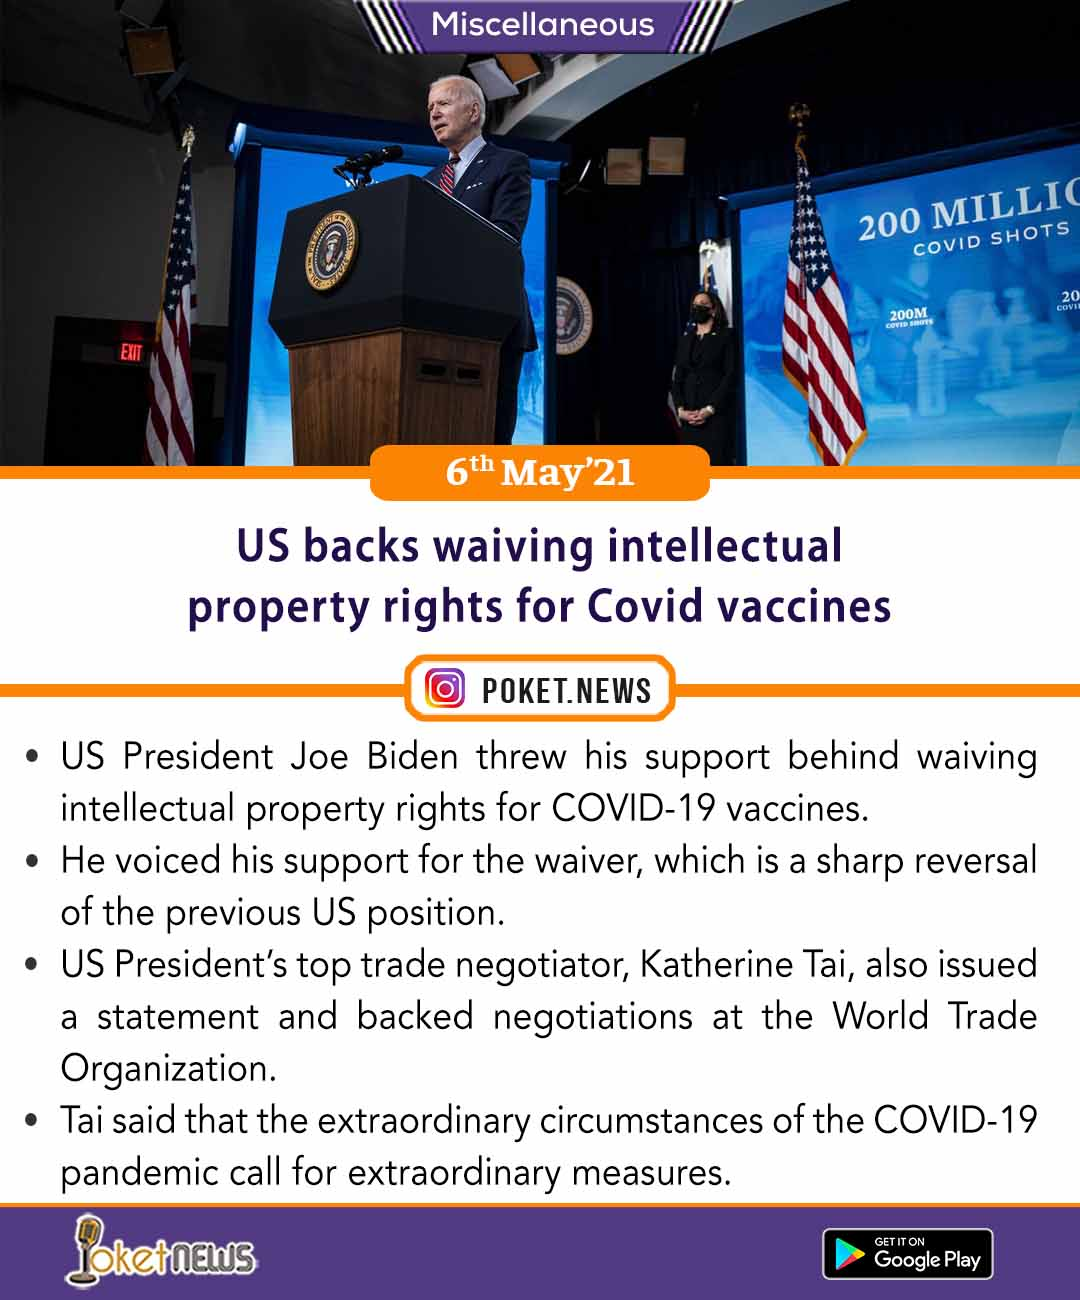 US backs waiving intellectual property rights for Covid vaccines